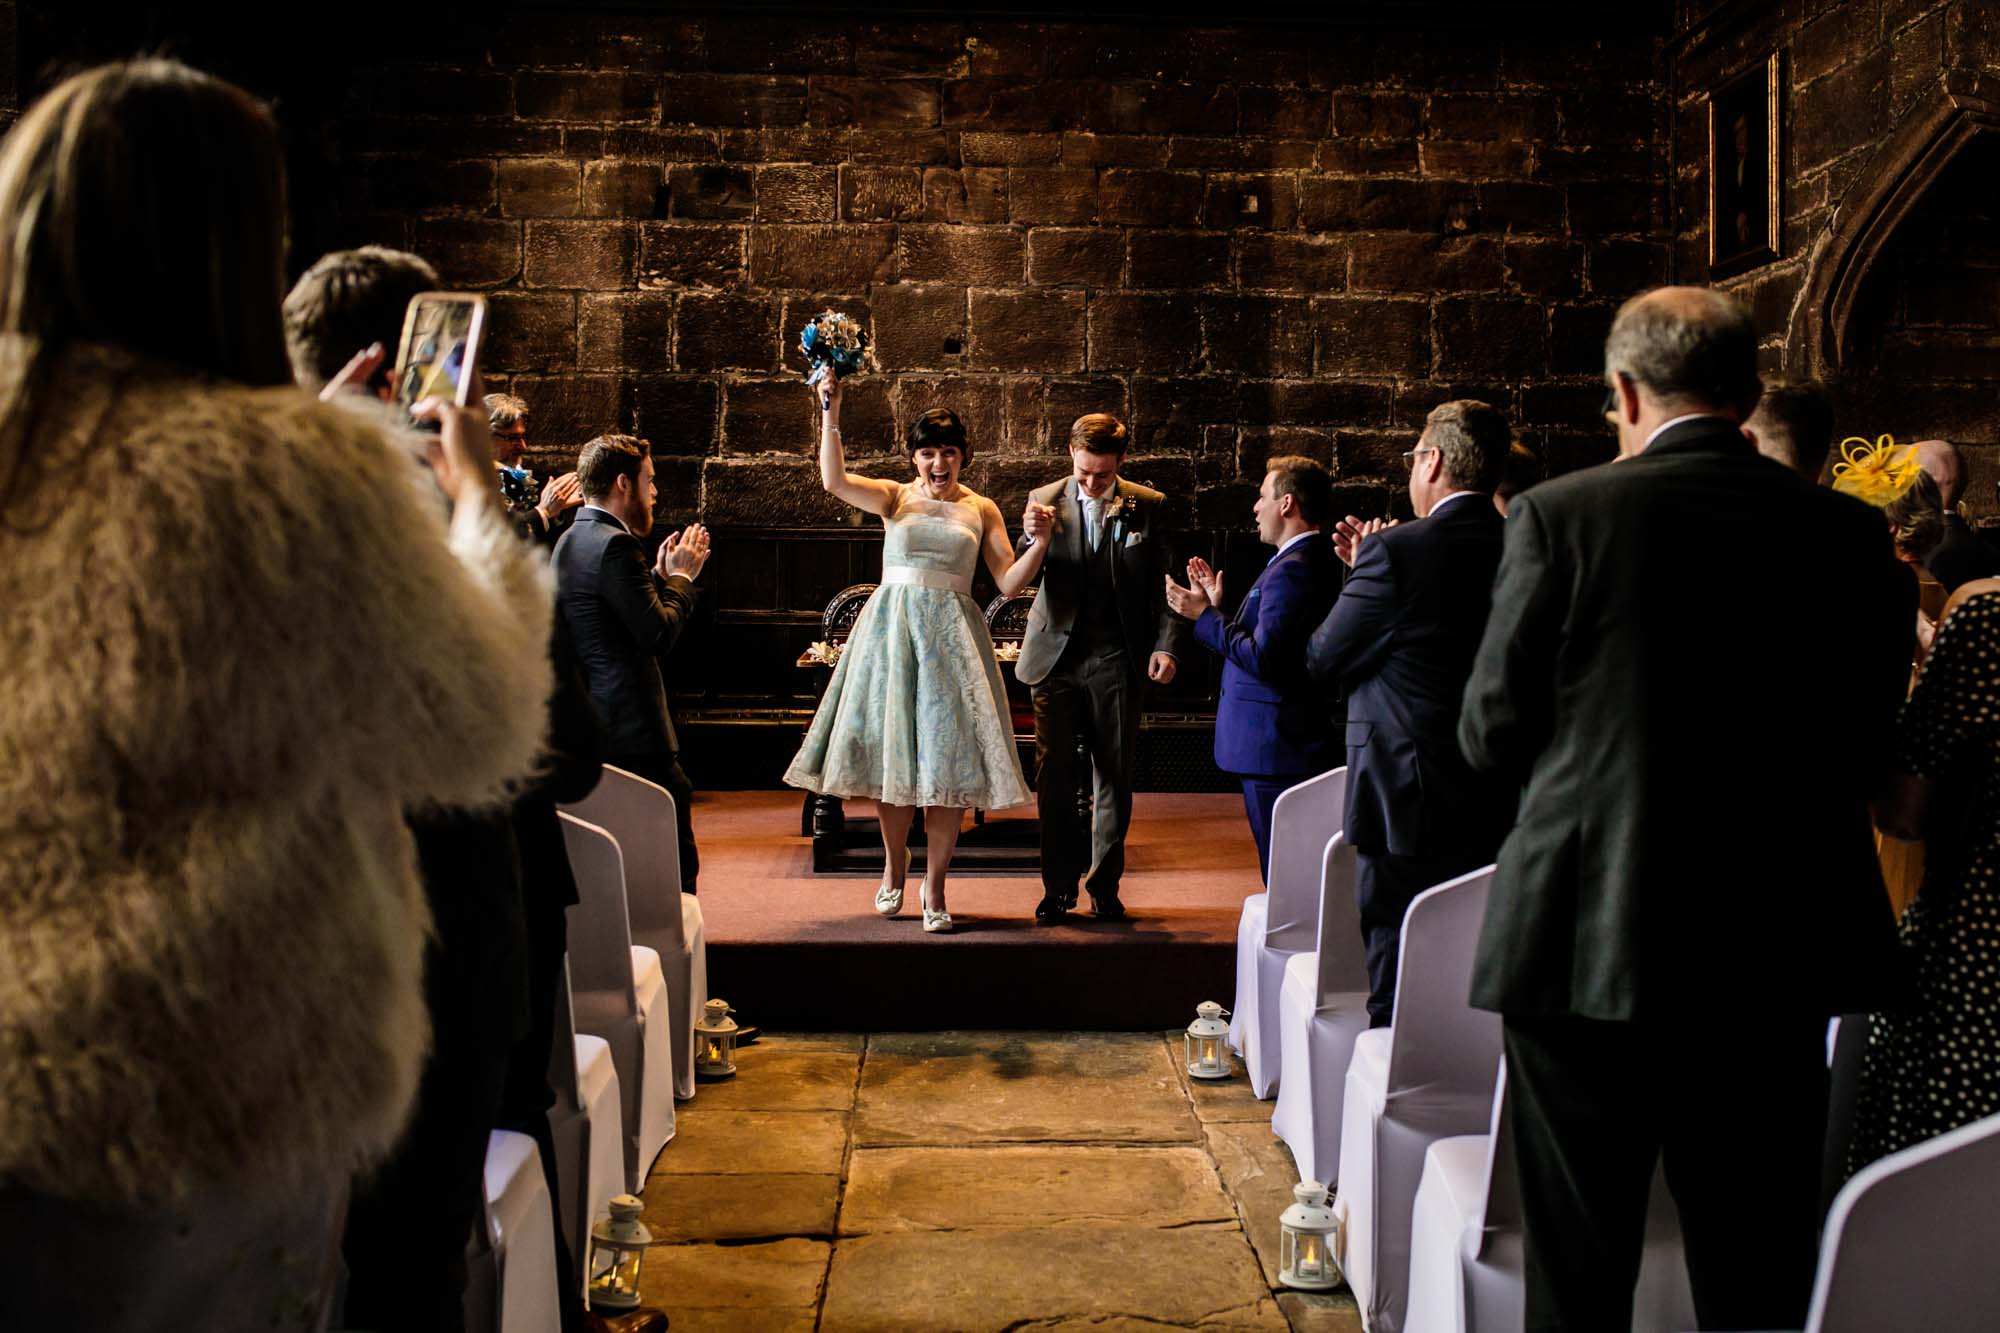 Wedding Photographs Chethams School of Music